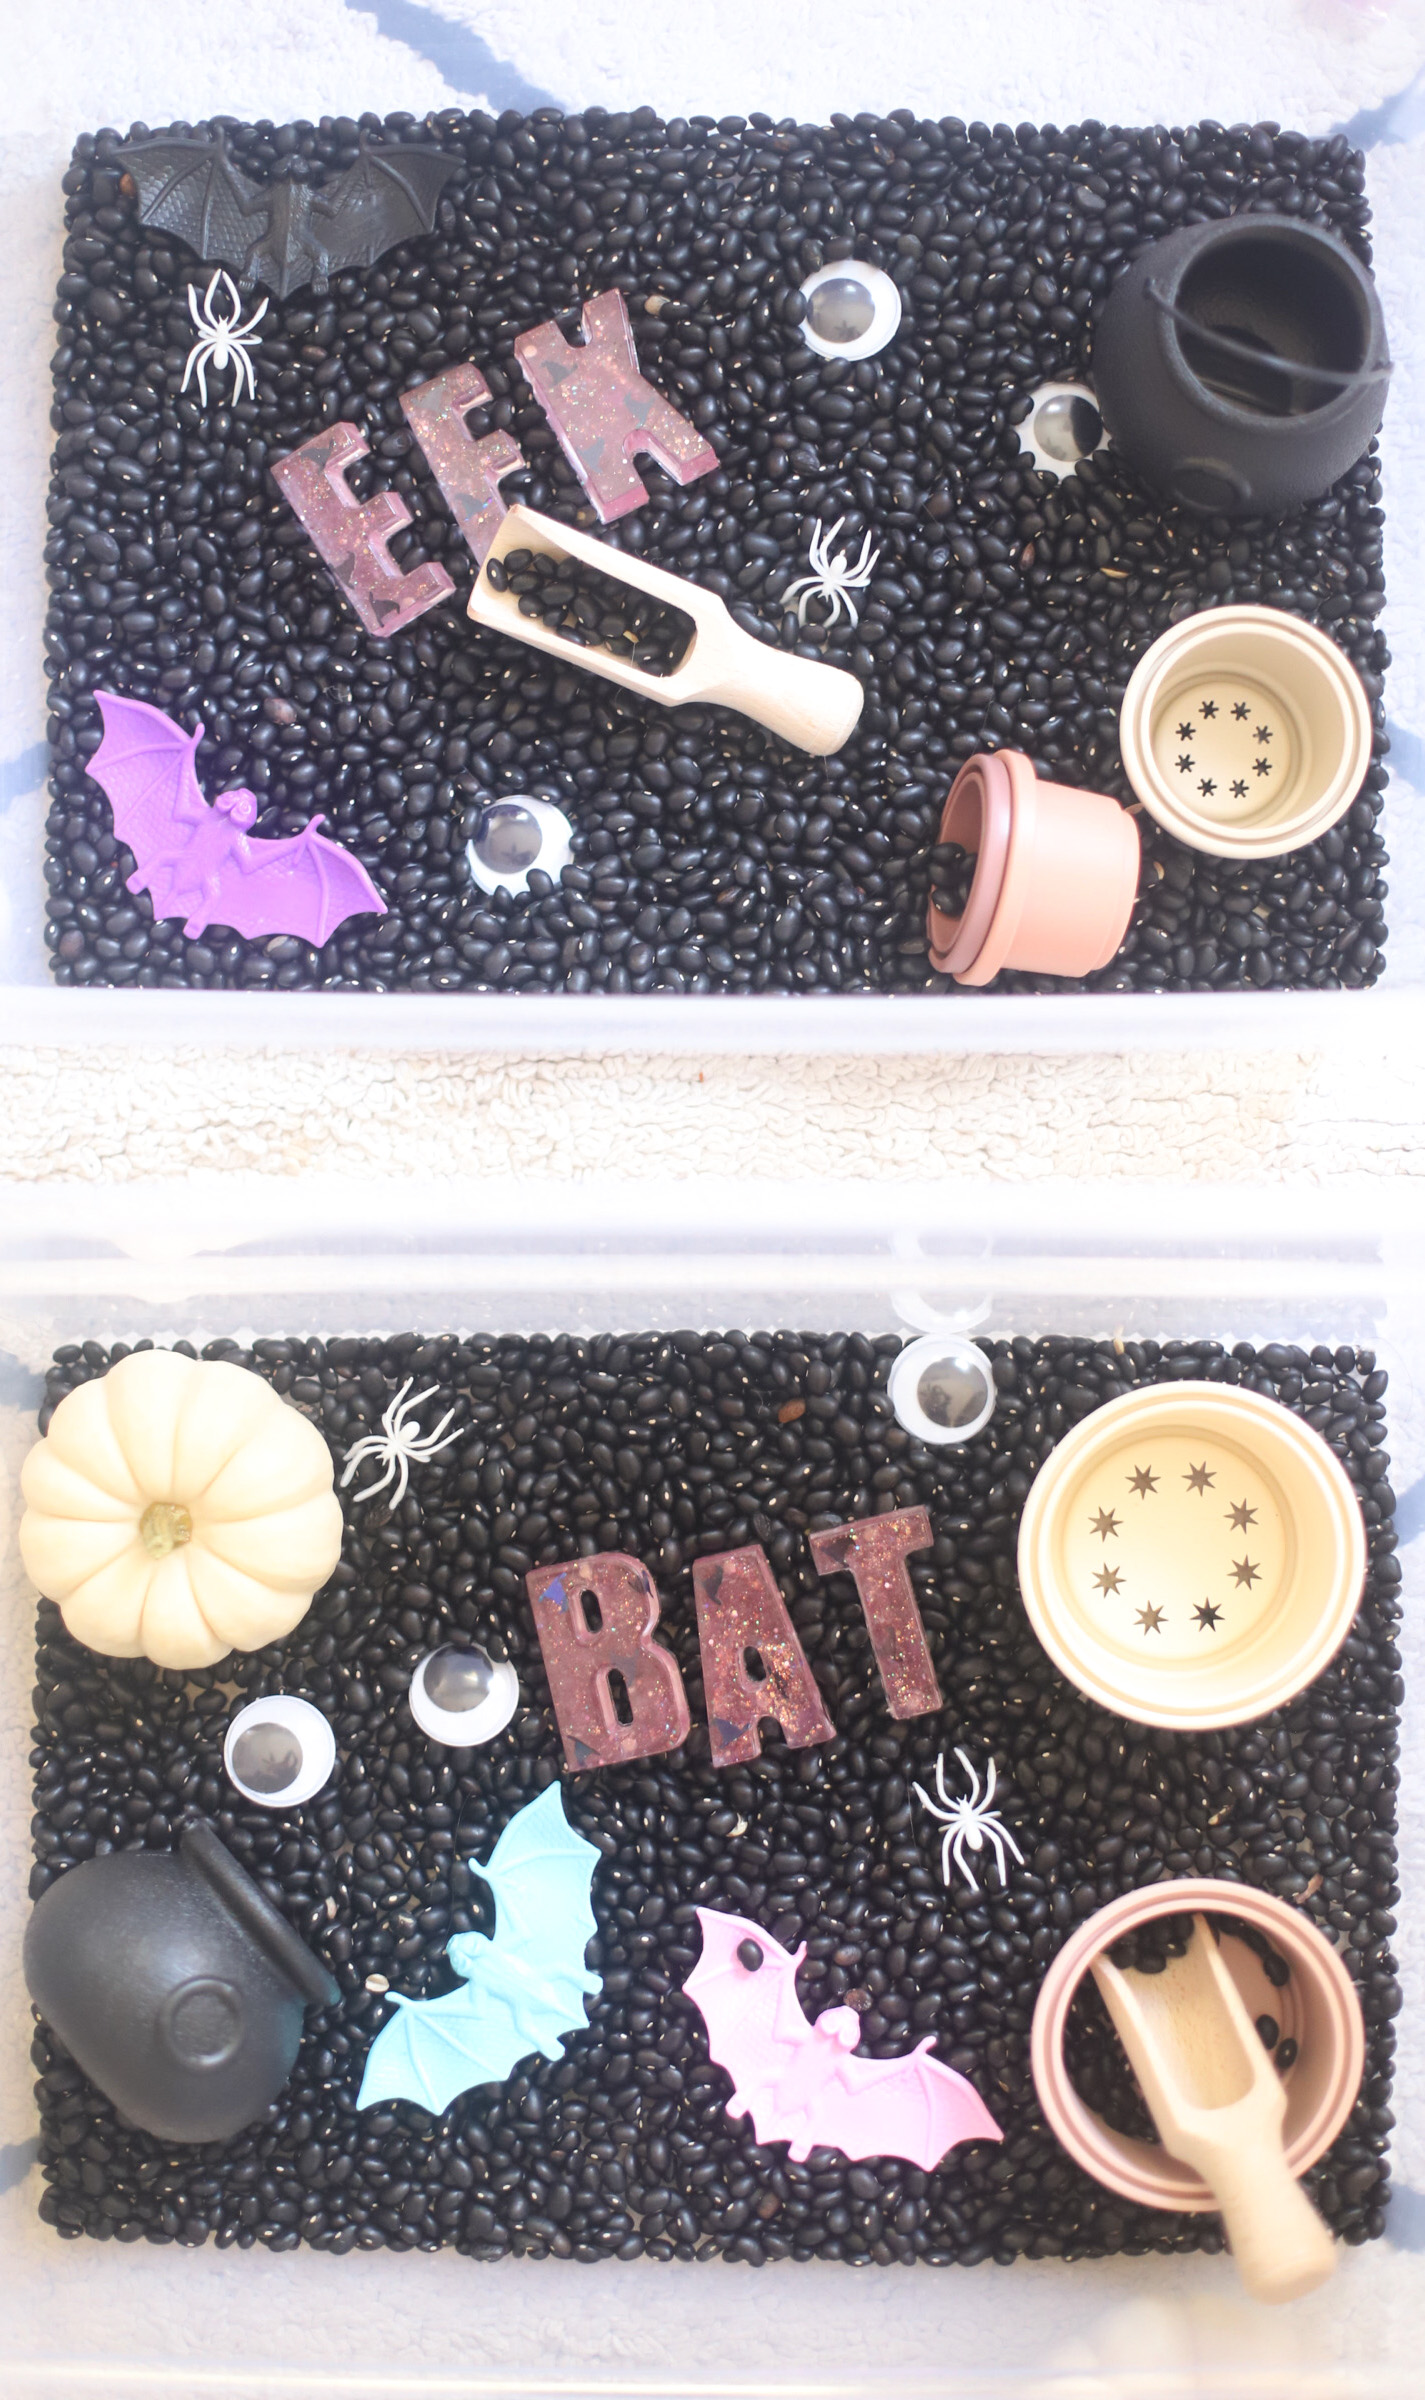 Get crafty this October and create something special with one of these 7 easy Halloween crafts and hands-on activities for toddlers and young kids! | @glitterinclexi | GLITTERINC.COM // Halloween Sensory Bin for Toddlers and Young Kids - The Perfect Not So Spooky Hands-On Craft - GLITTERINC.COM